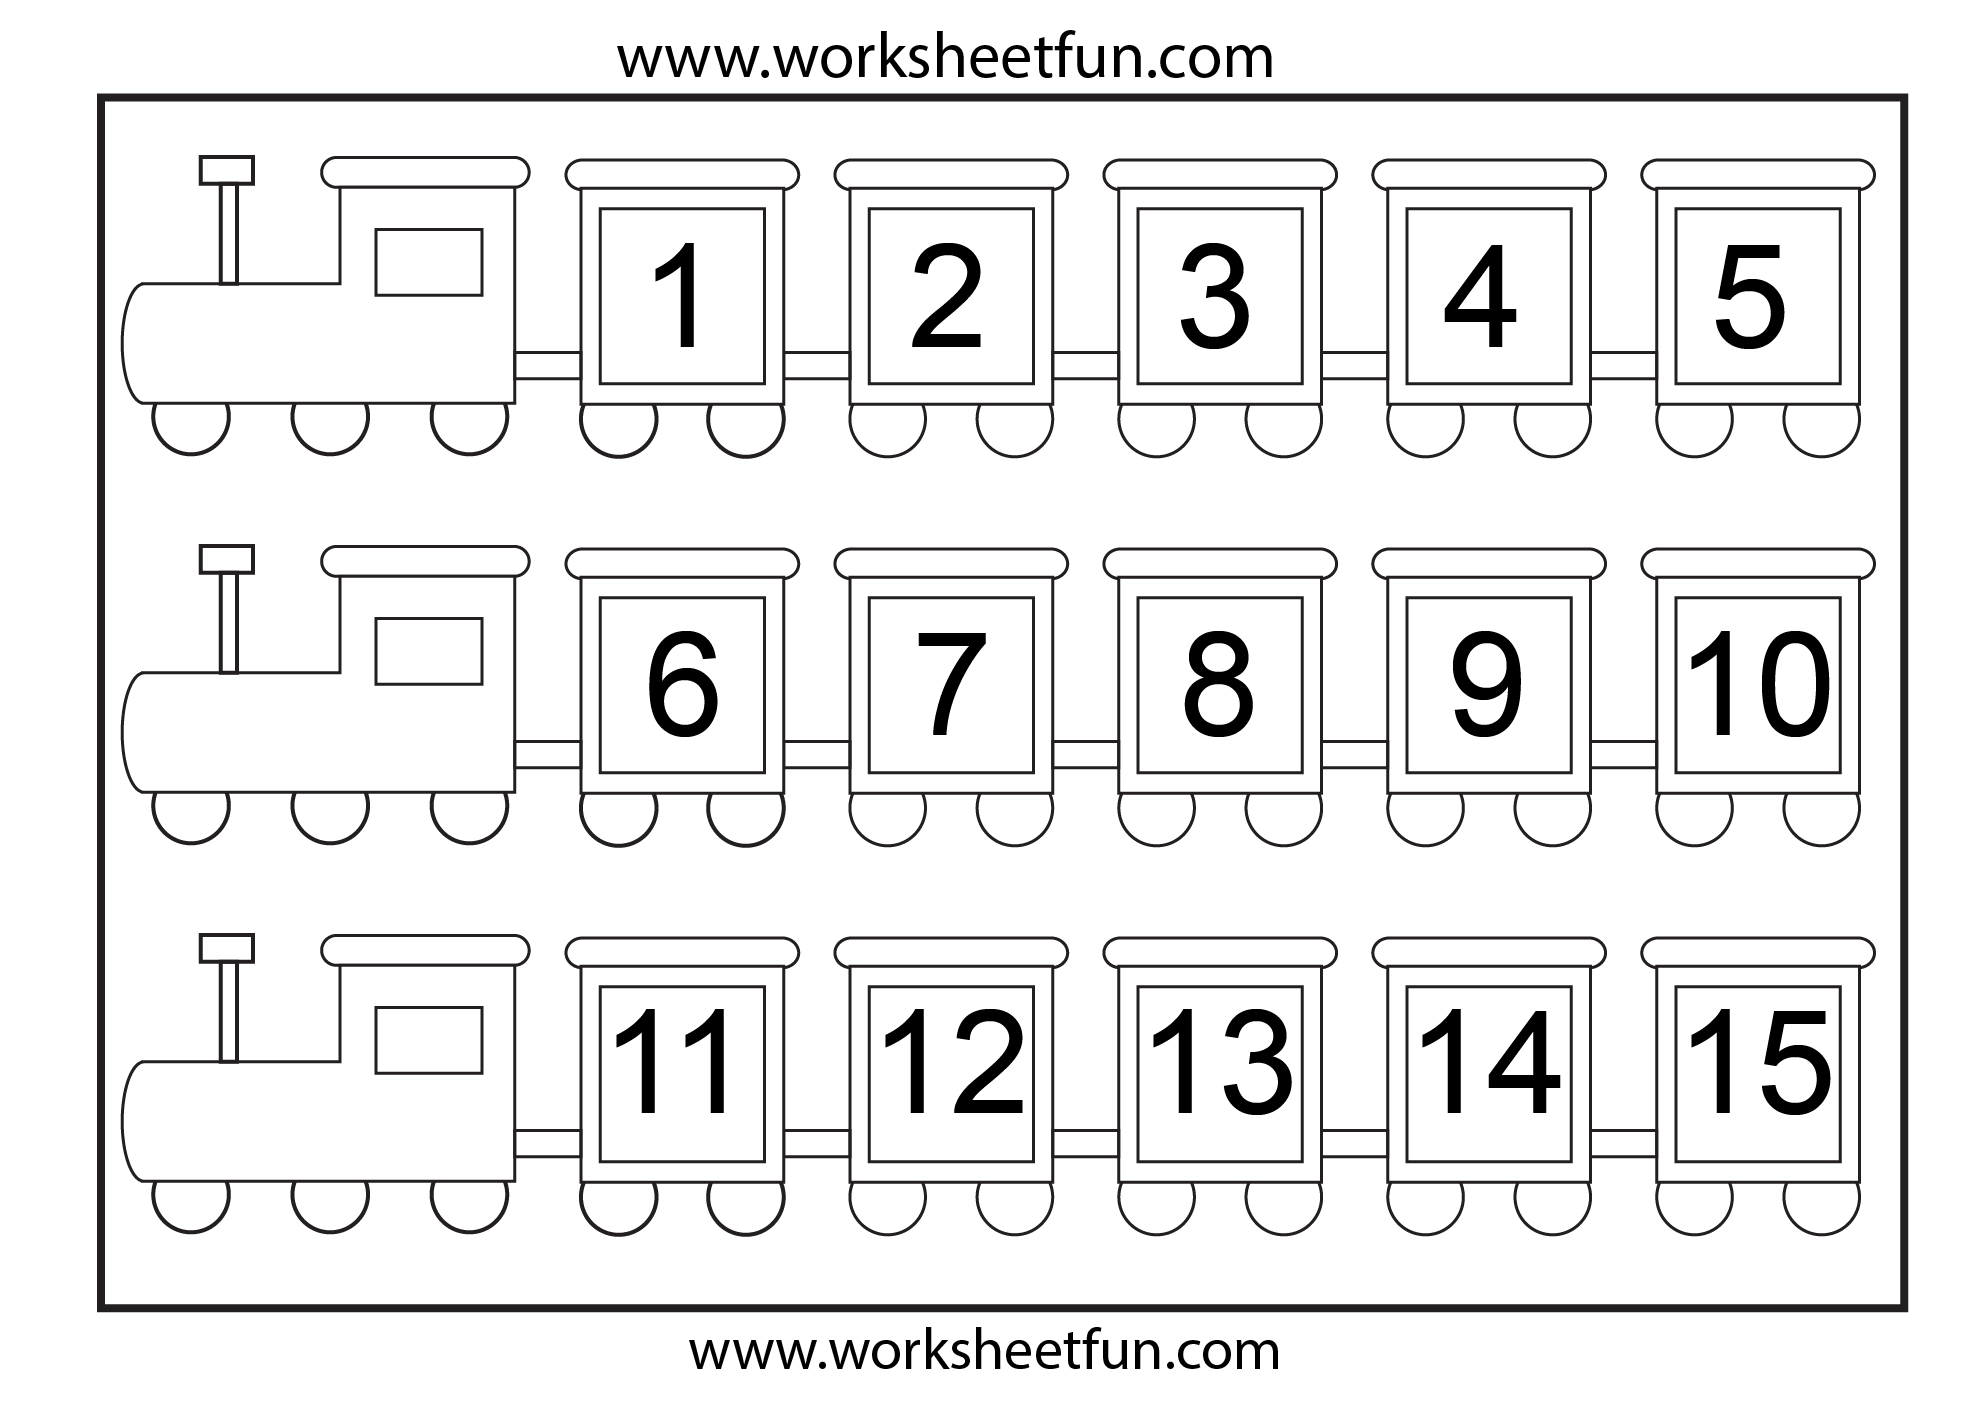 math worksheet : number practice sheets for kindergarten 1 20  k5 worksheets : Number Worksheets For Kindergarten 1 20